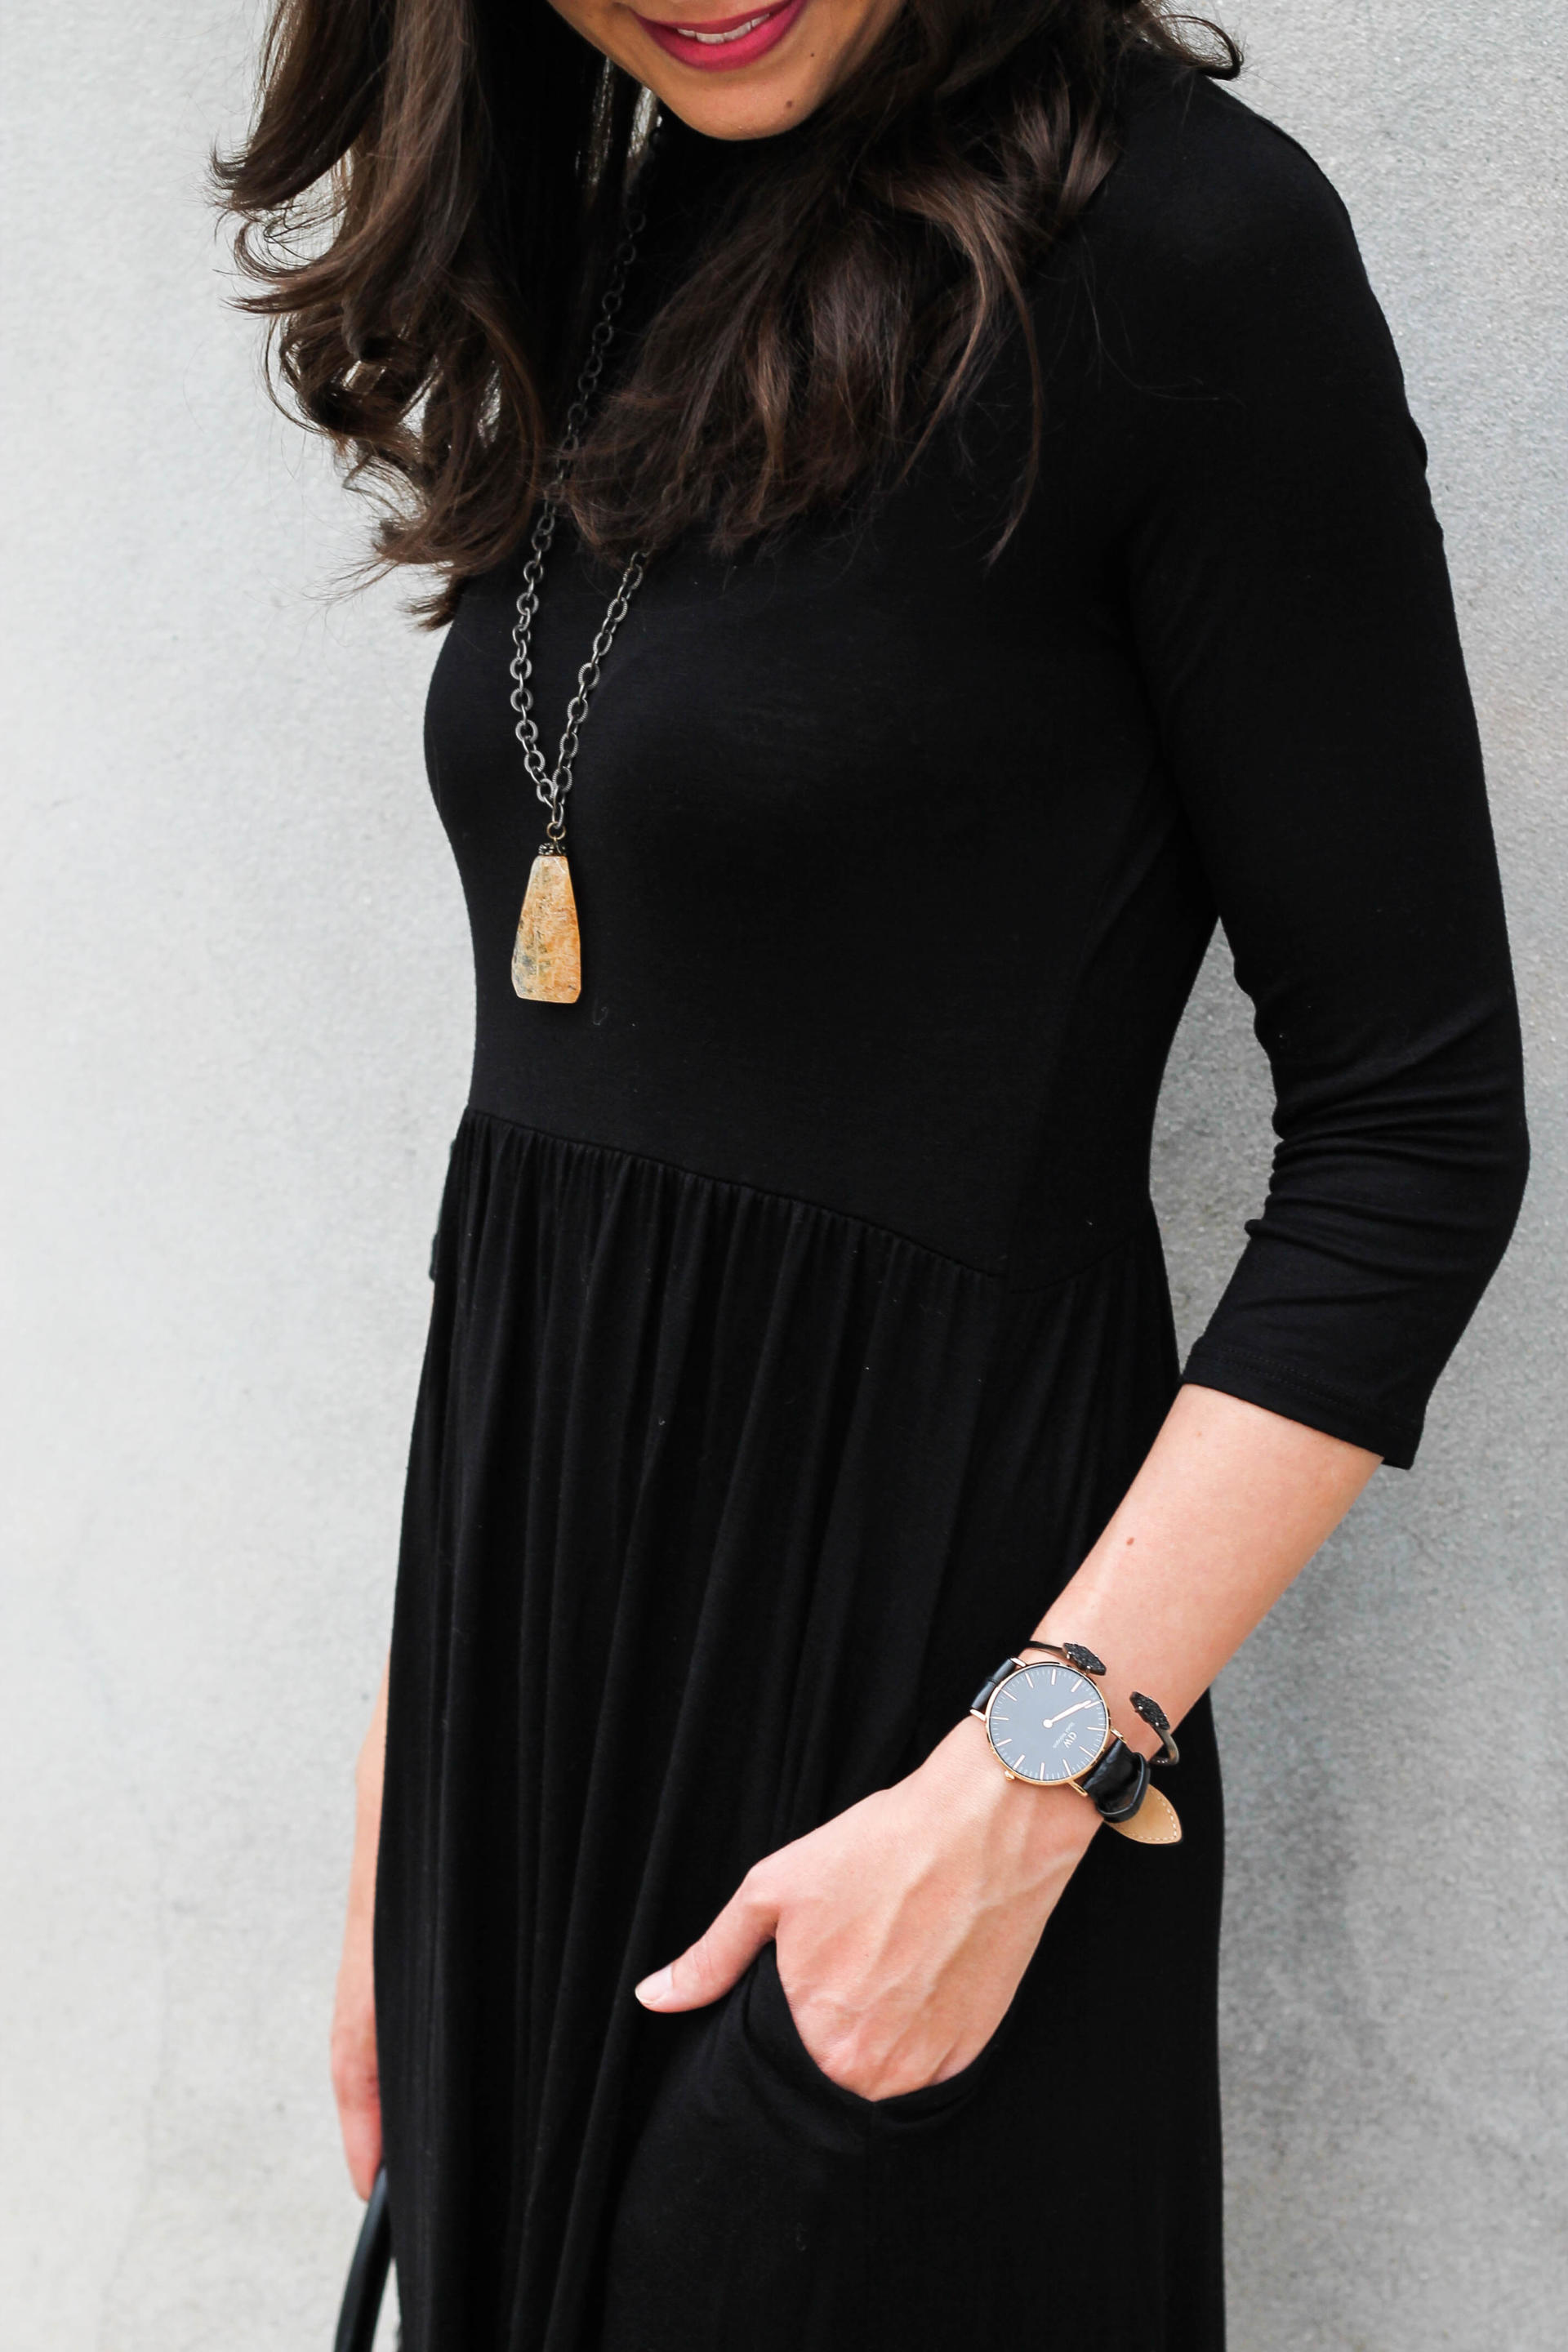 Modest Clothing With Dainty Jewels